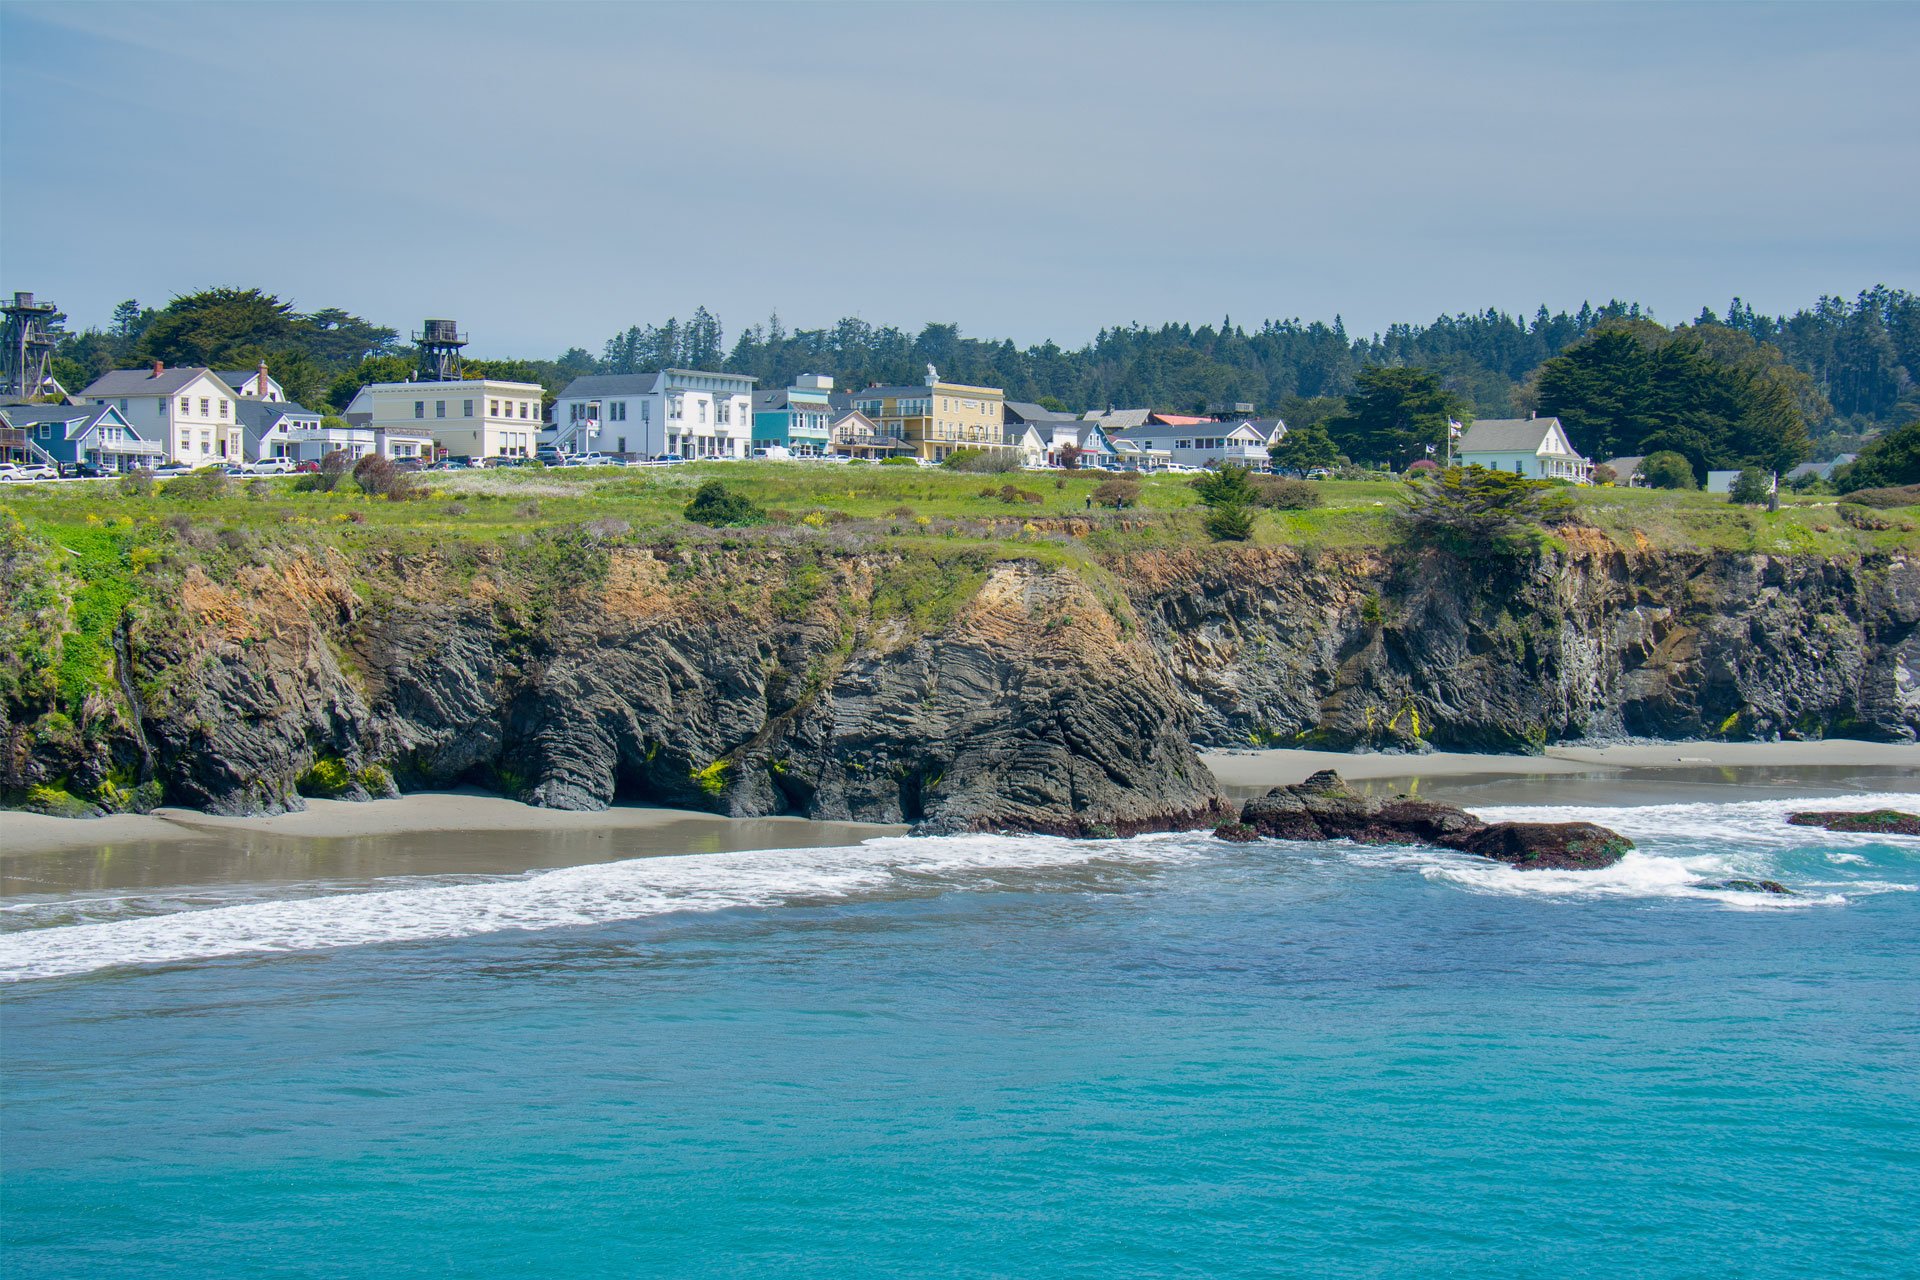 Mendocino, California; Courtesy of picchu productions/Shutterstock.com